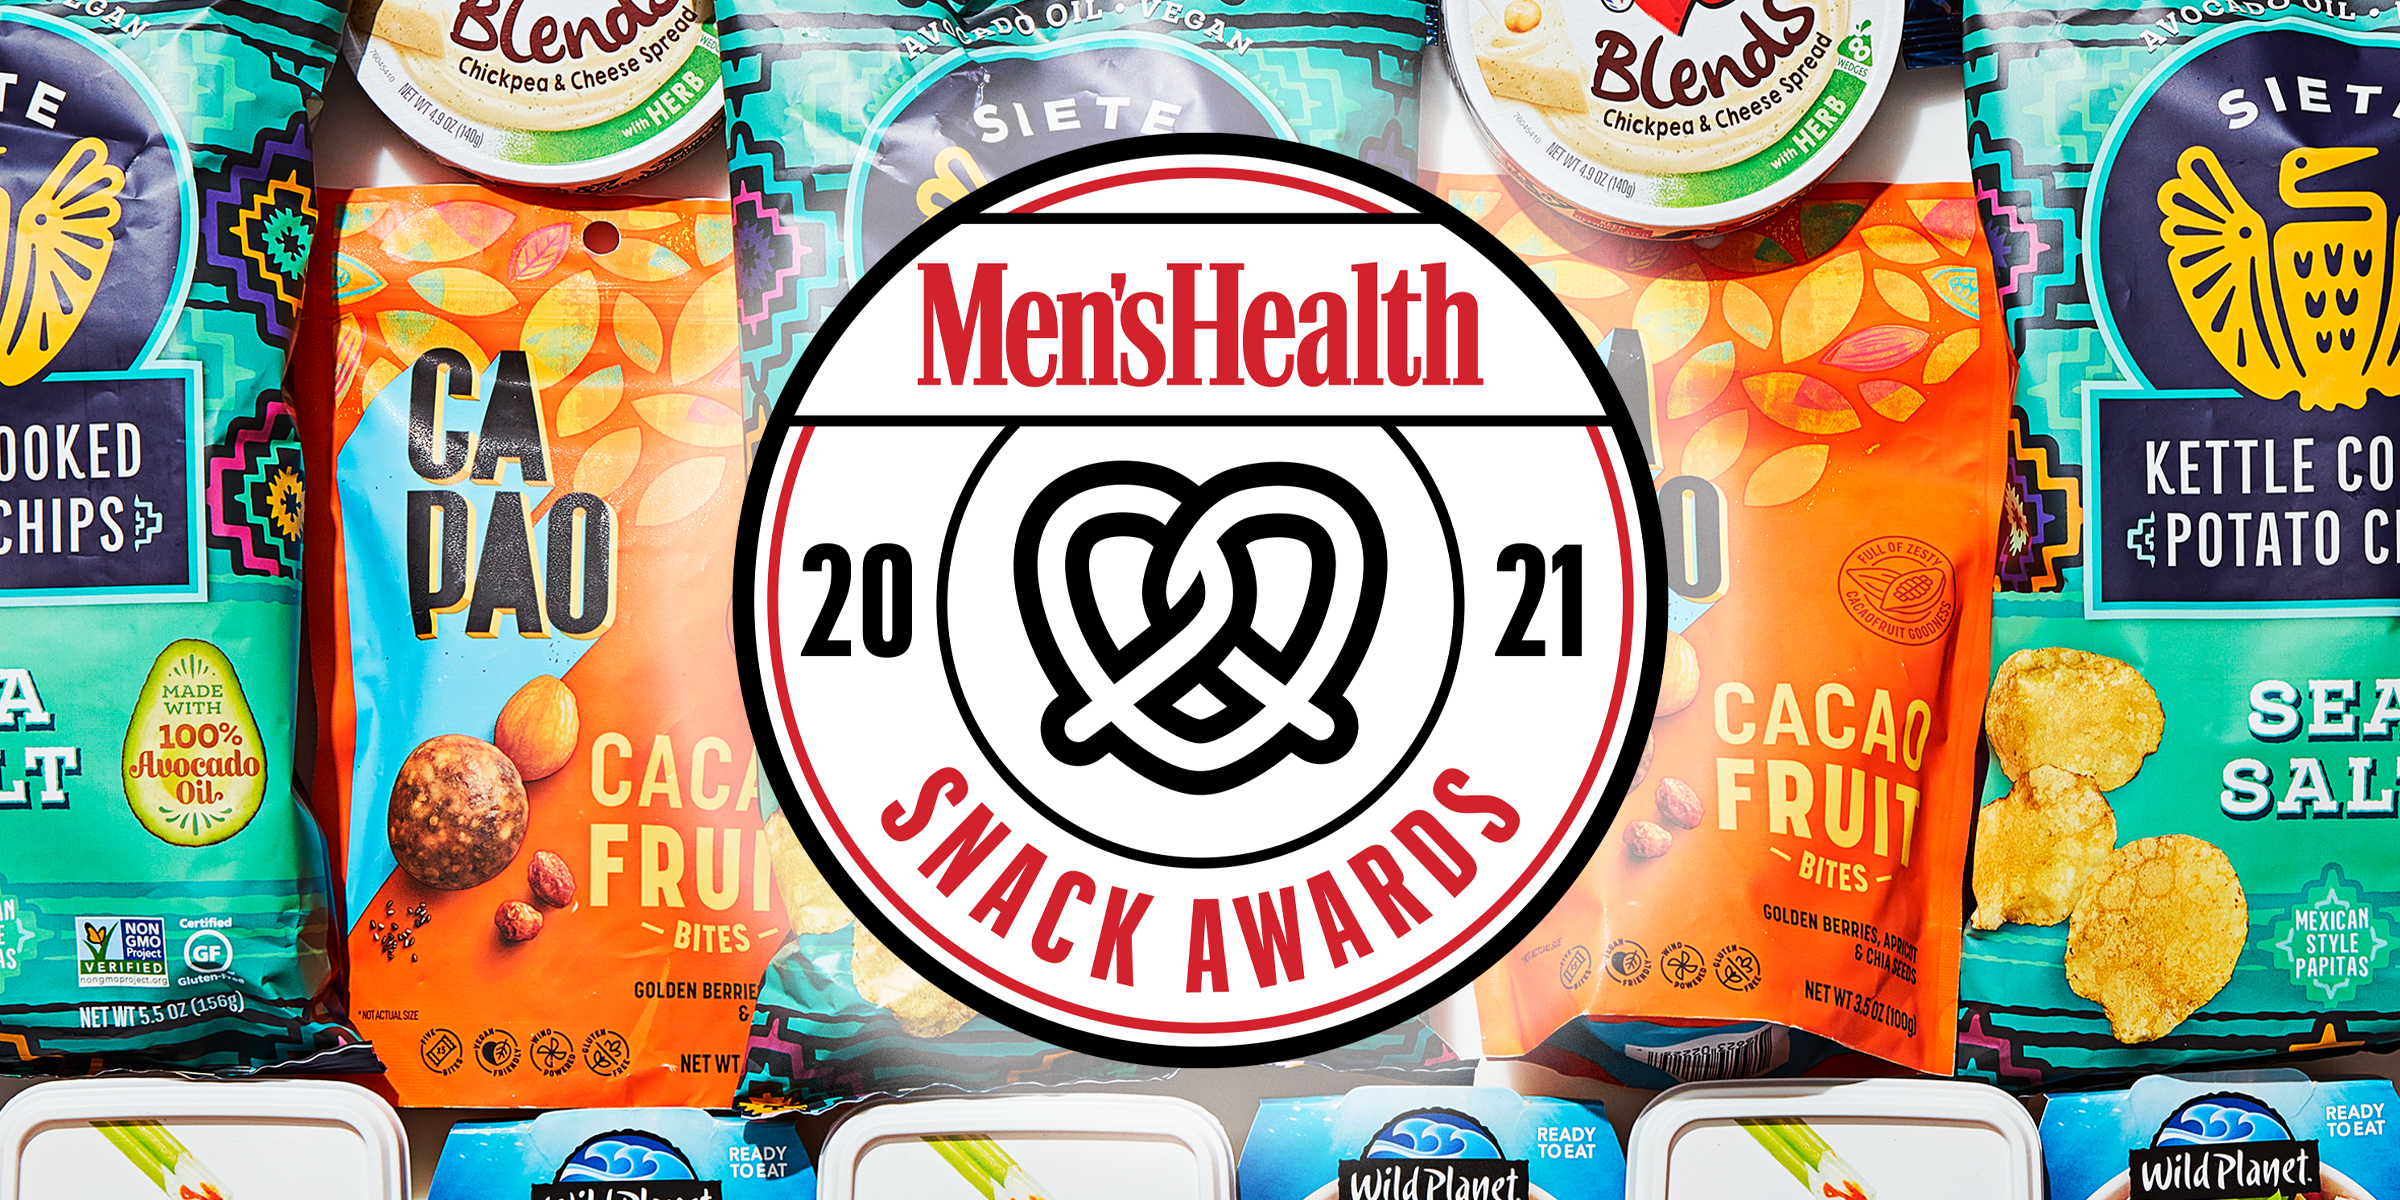 Here Are the Winners of the 2021 Snack Awards